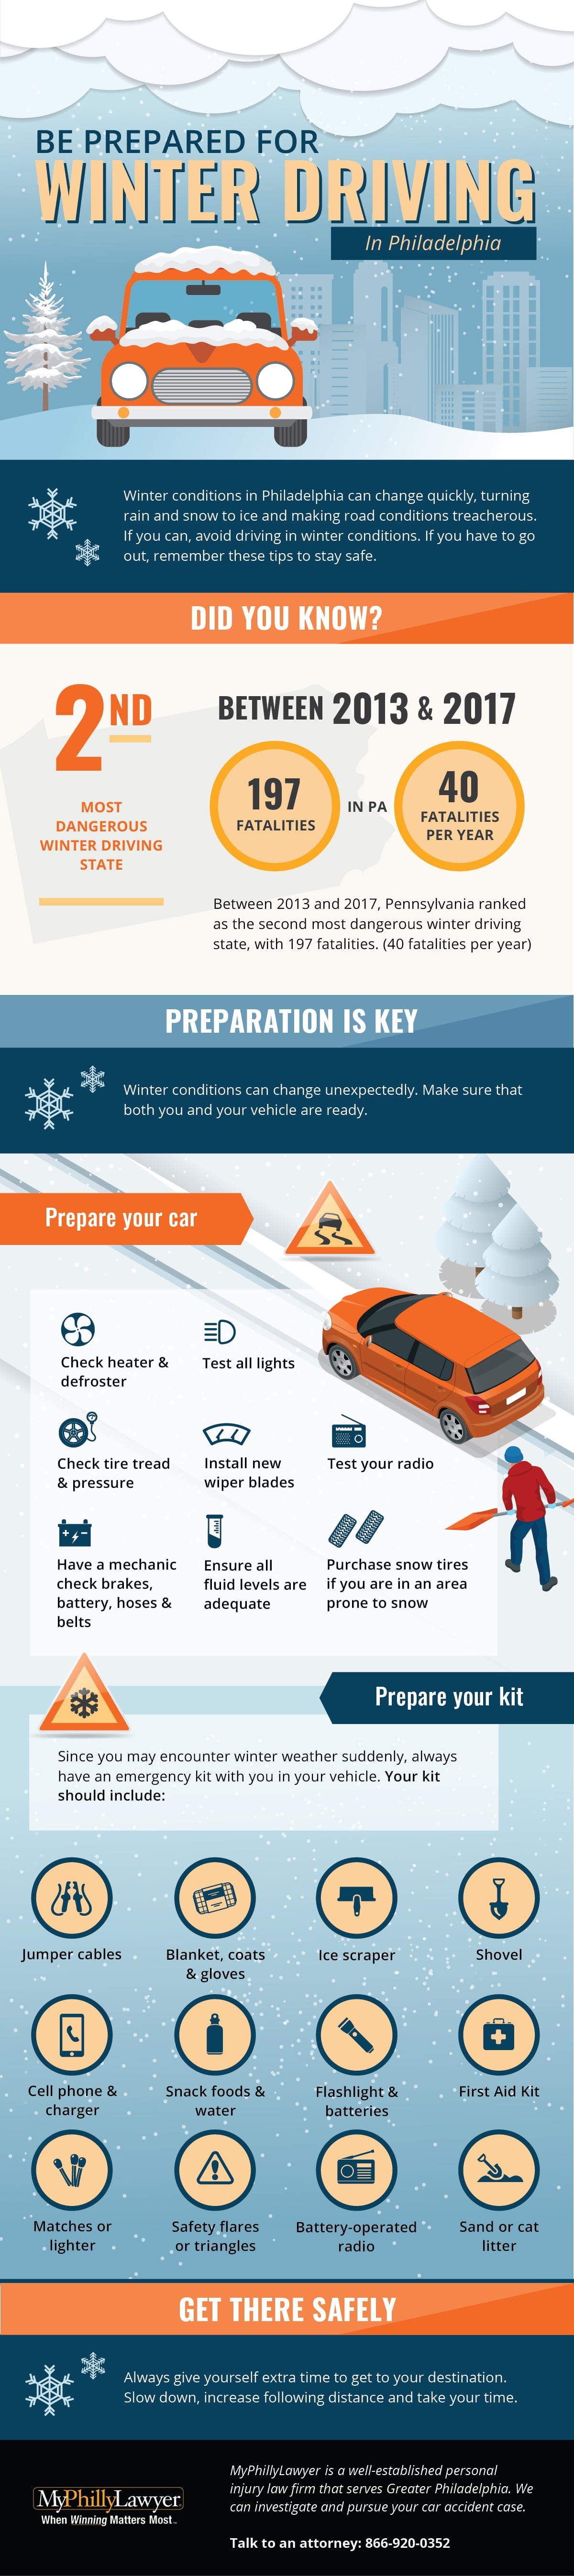 Be Prepared For Winter Driving in Philadelphia